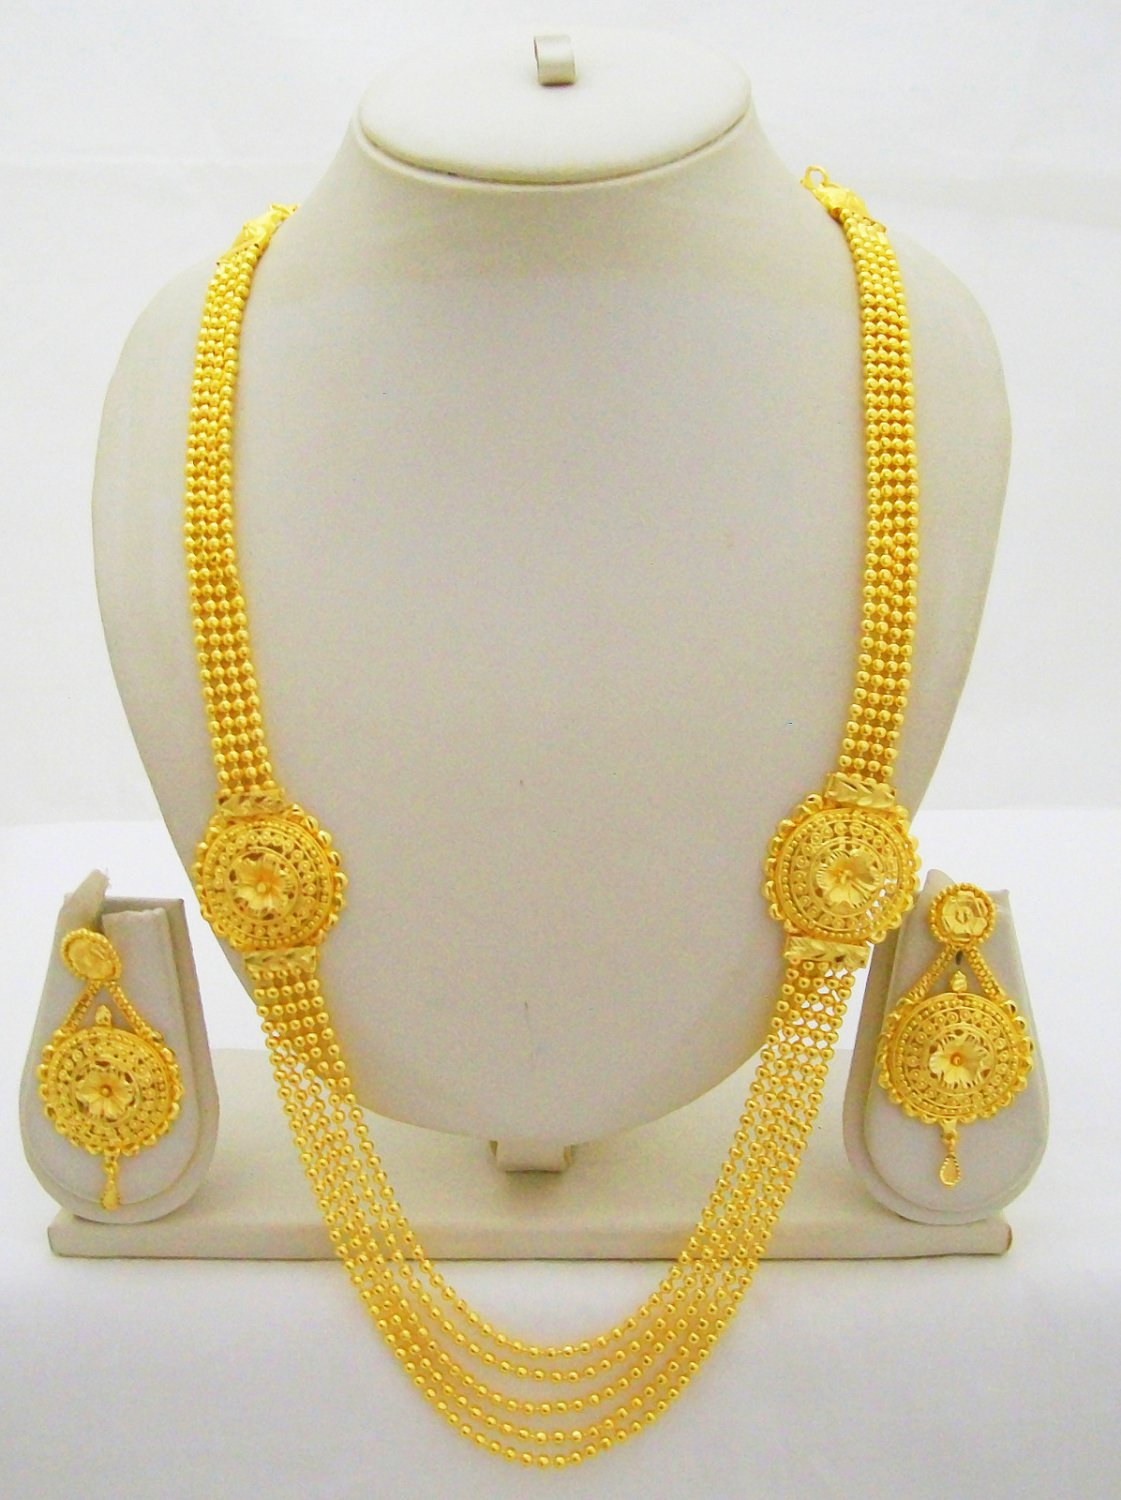 Gold Plated Indian Rani Haar Necklace Beads Chain Long Layered Bridal Jewelry Set